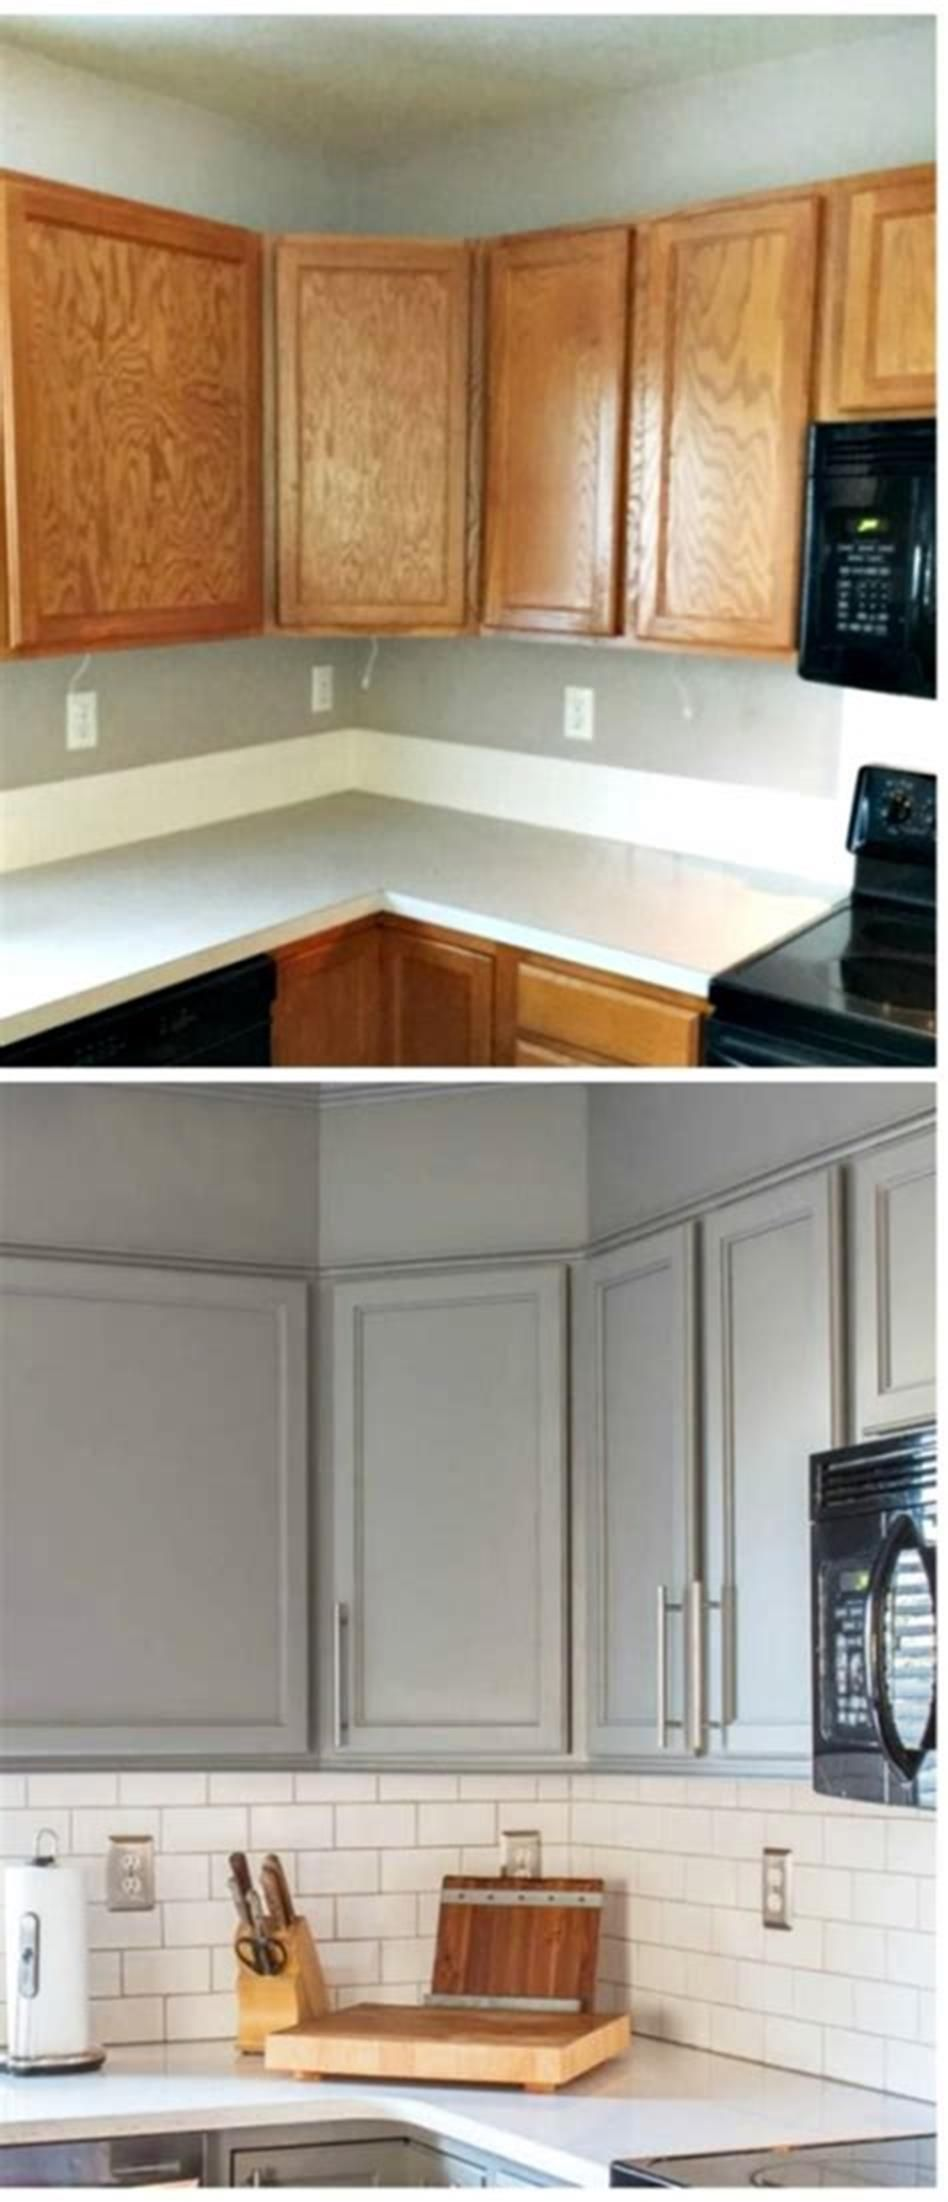 43 amazing kitchen remodeling ideas for small kitchens 2019 small kitchen makeovers cheap on kitchen makeover ideas id=22455